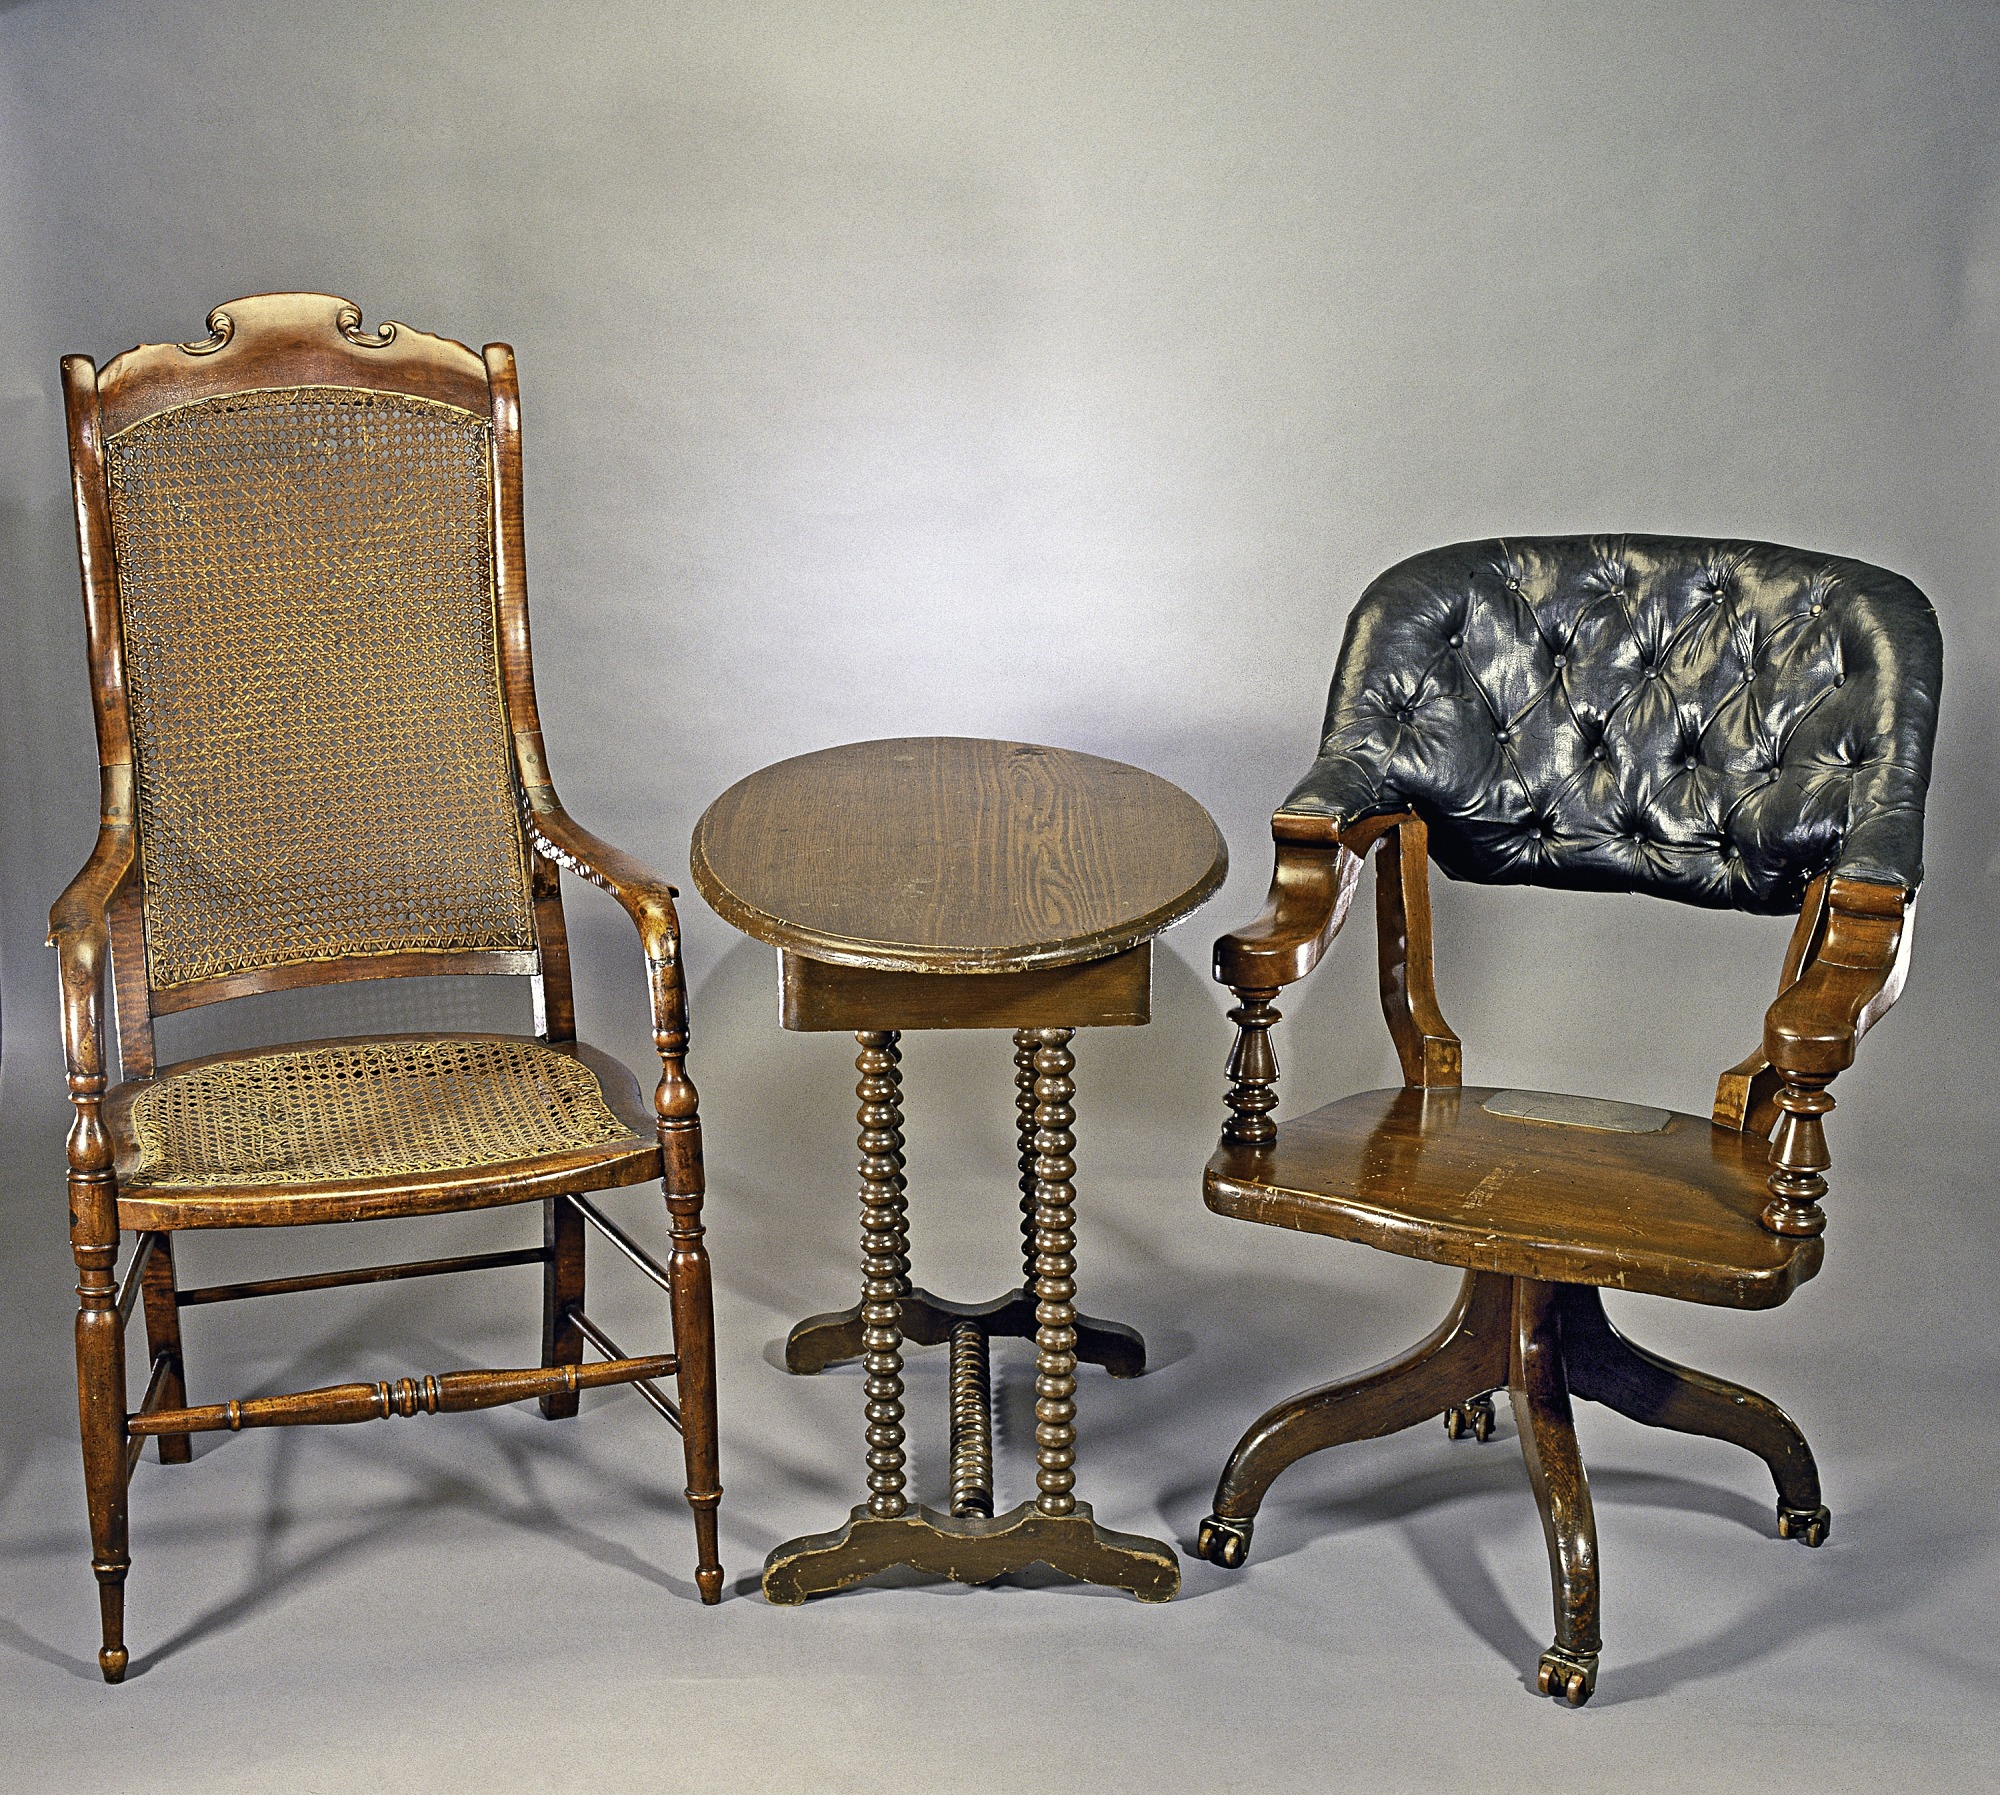 images for Ulysses S. Grant's chair from Appomattox